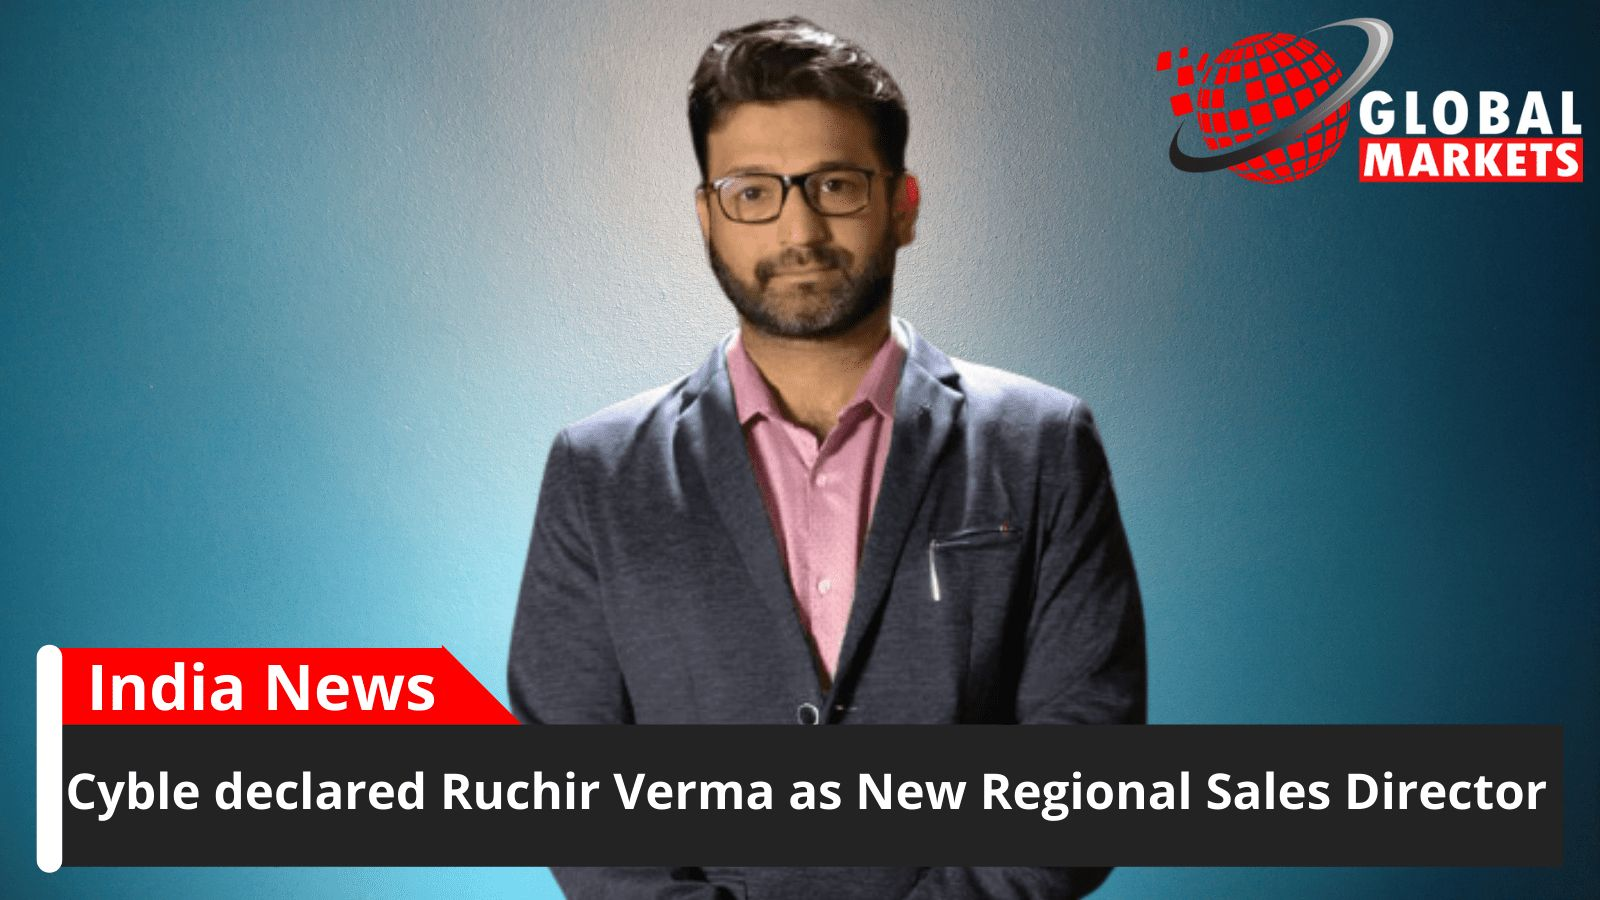 Cyble declared that Ruchir Verma will be new Regional Sales Director